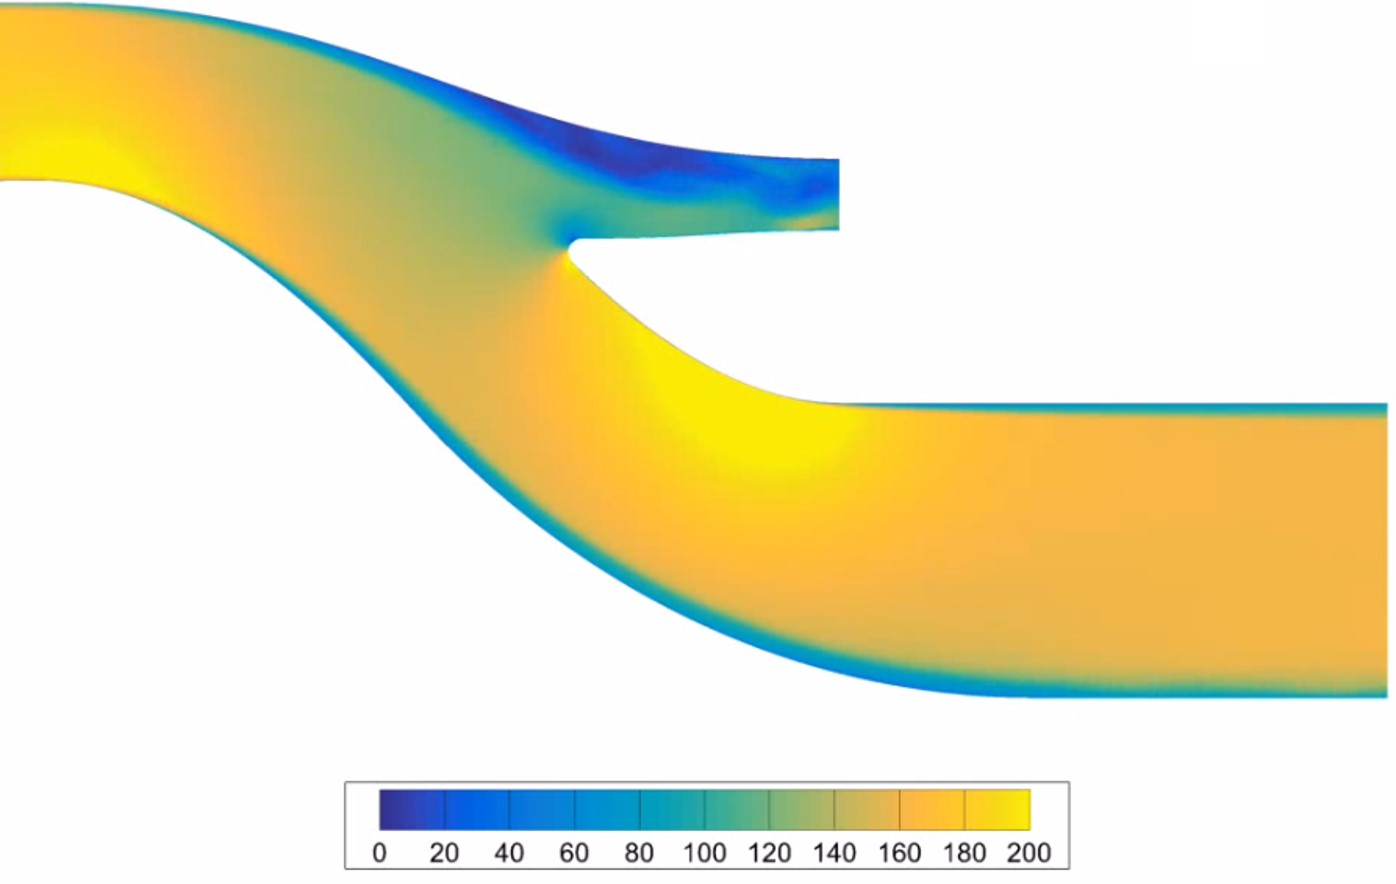 Velocity contour from a transient flow simulation